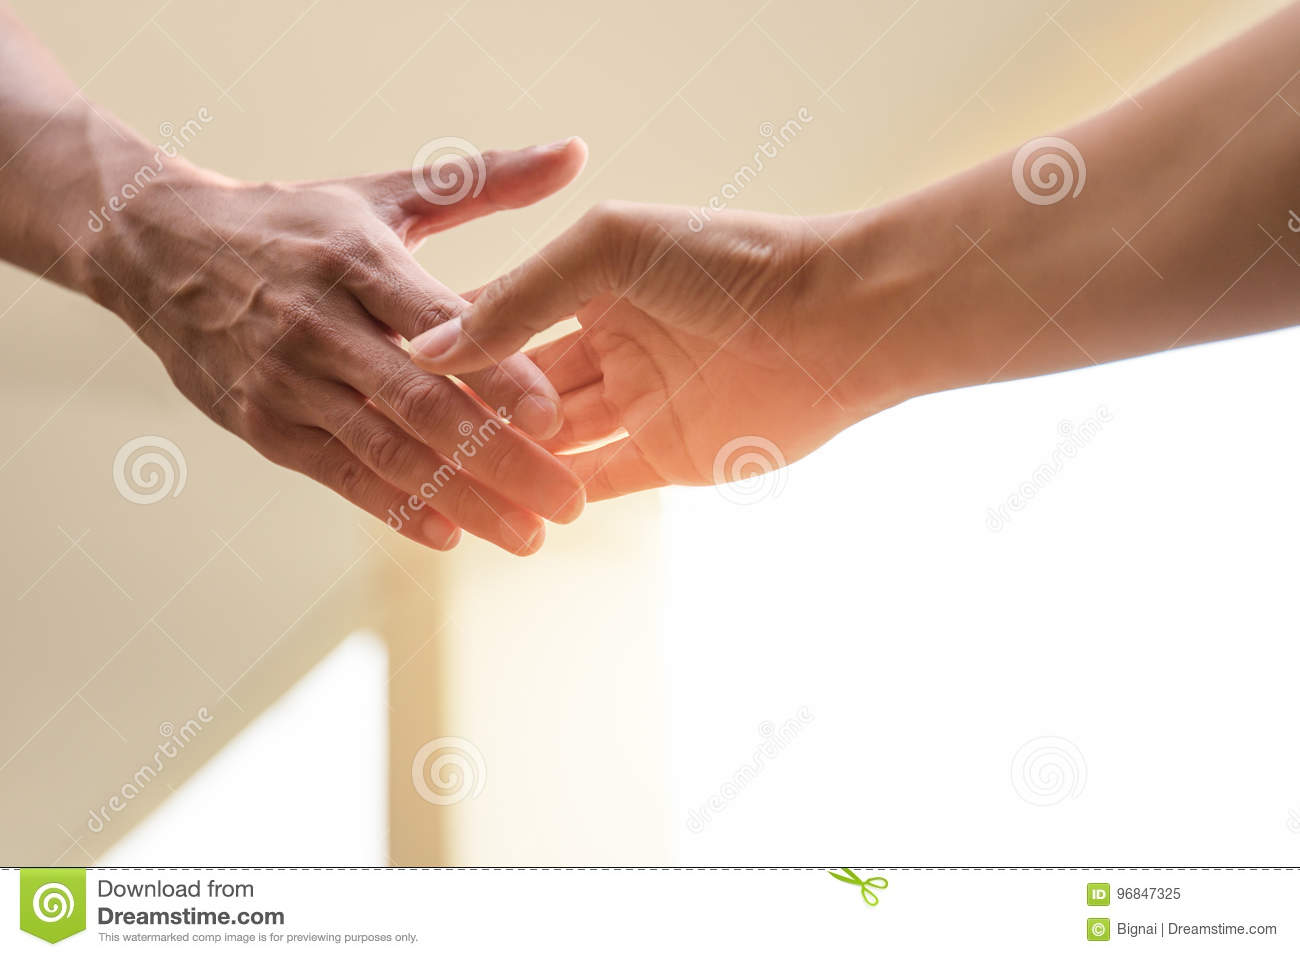 Help Concept Hands reaching out to help together